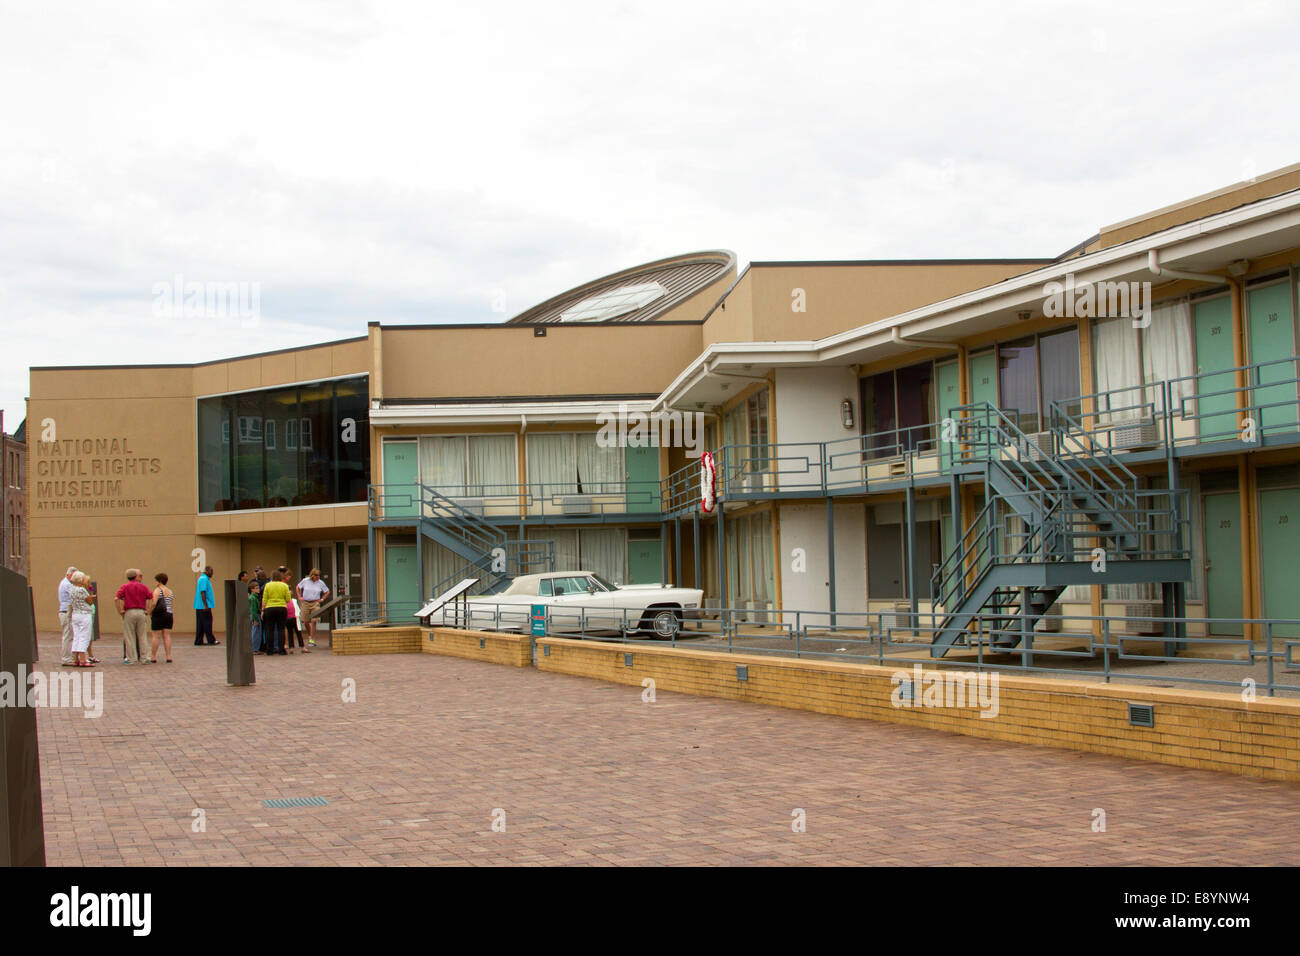 National Civil Rights Museum located in the old Lorraine Motel, site of the Martin Luther King, Jr assassination, - Stock Image